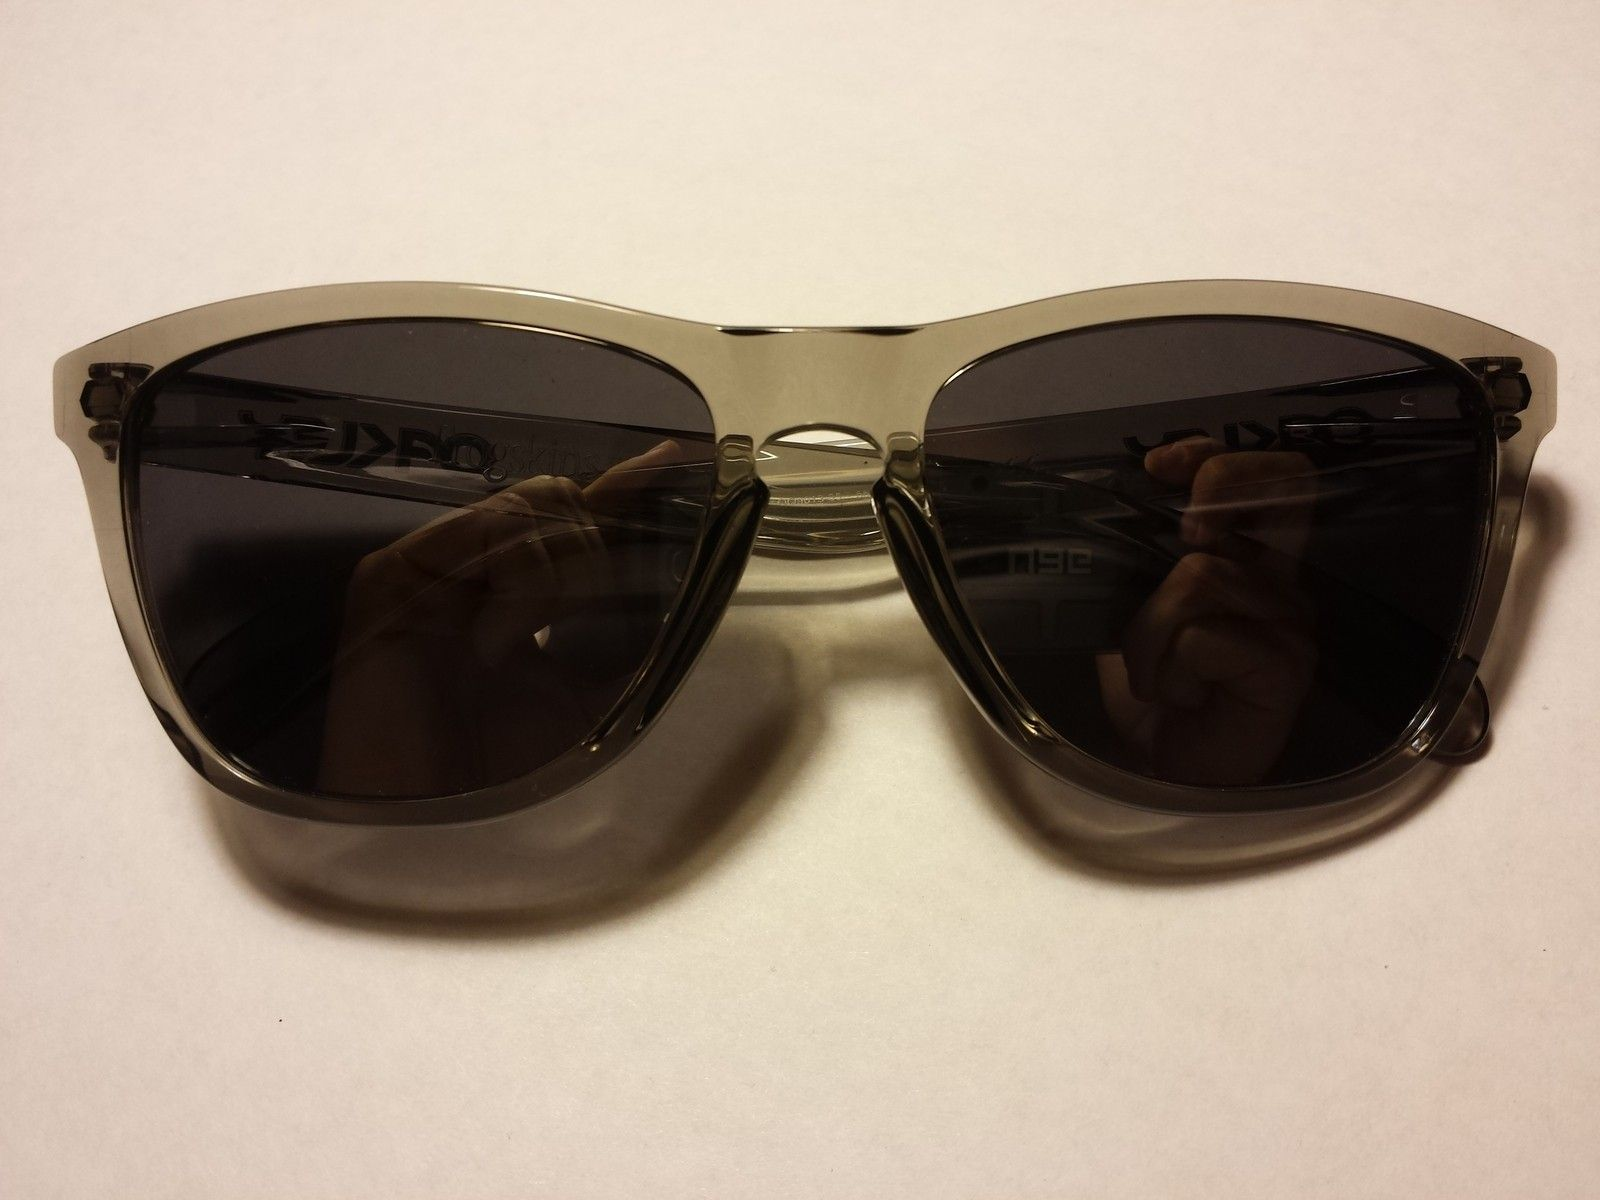 FSOT Ruby Frog Lenses - uploadfromtaptalk1435279529817.jpg